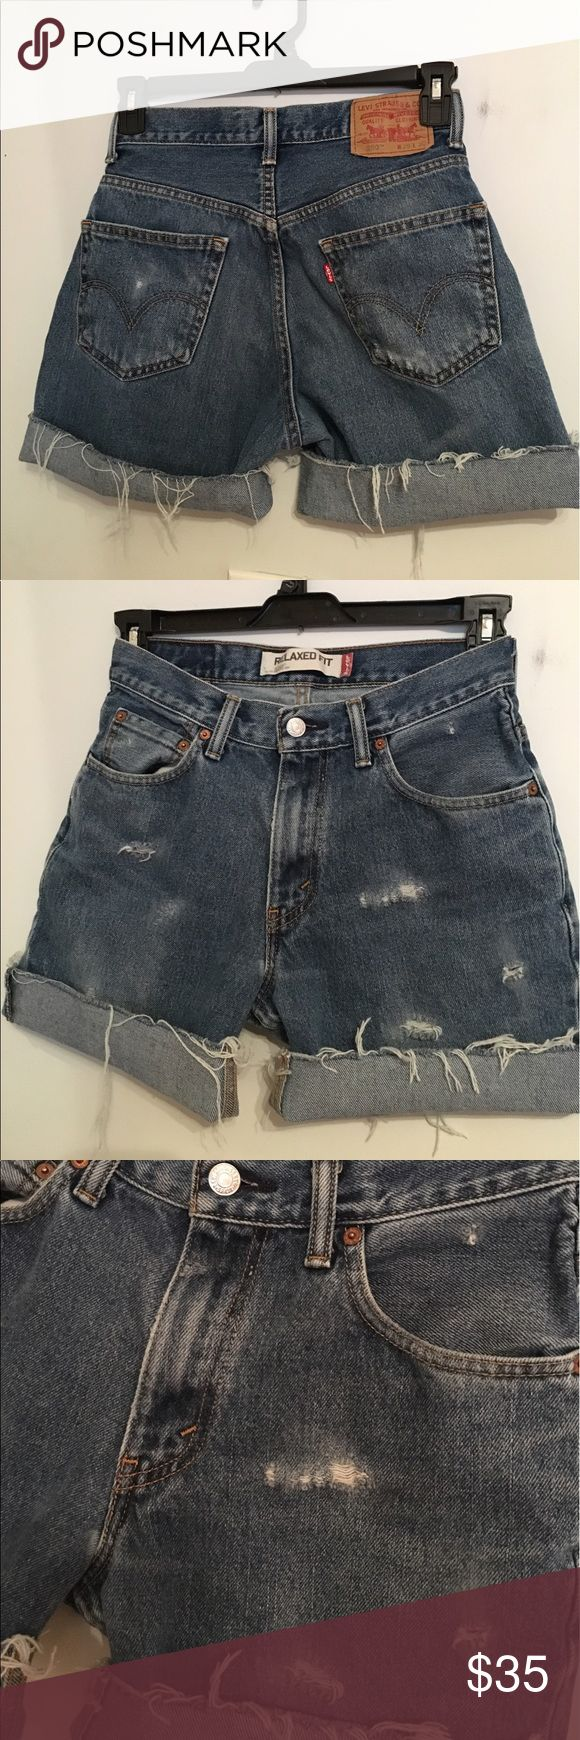 Distrssed Levi's SALE These are cut off and distressed by me   They are size 29 waist and are ready for those summer concerts or just hanging out! 6 in length unrolled Levi's Shorts Jean Shorts